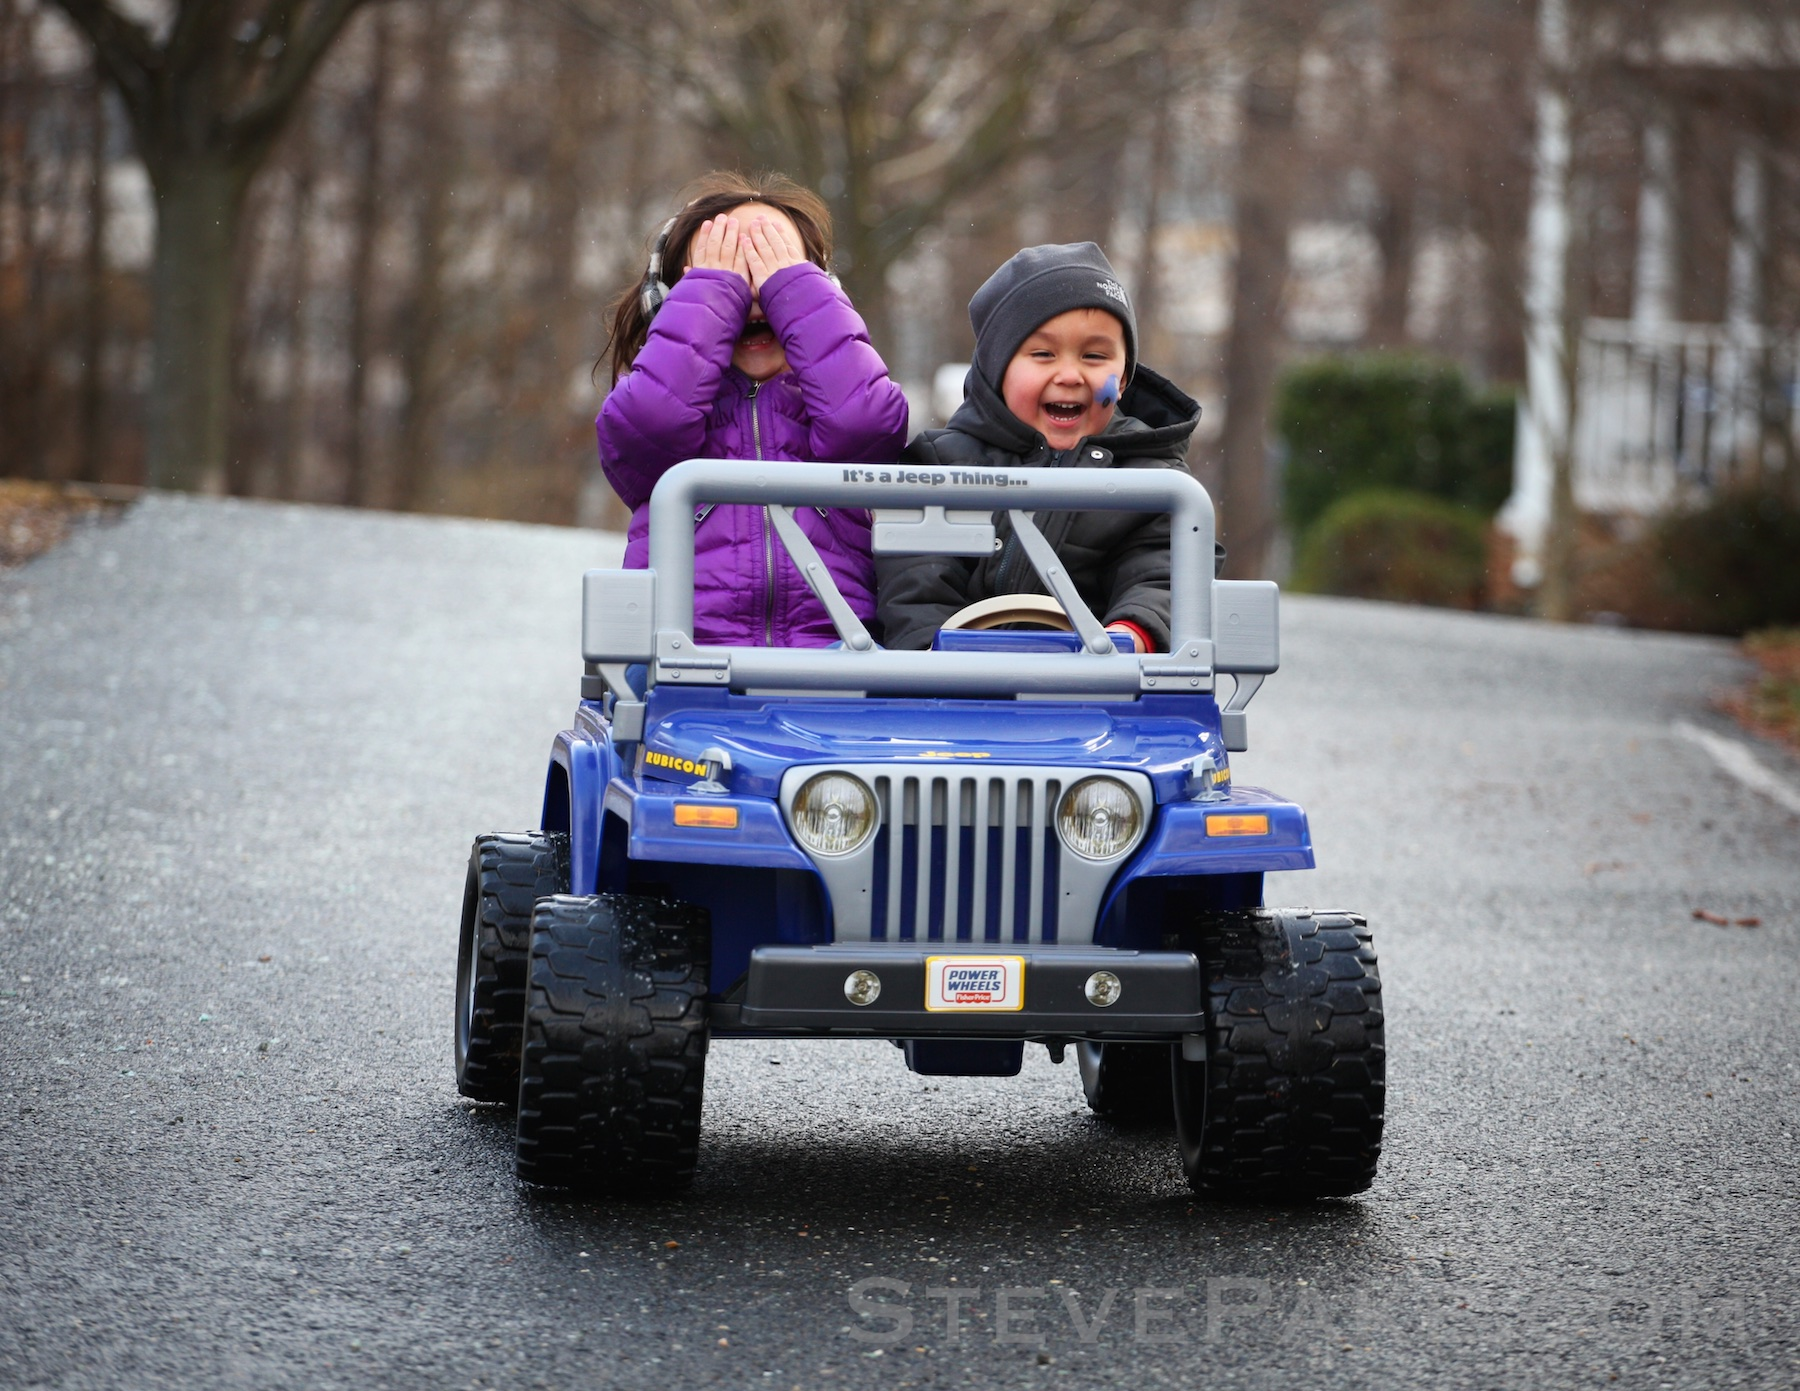 """The """"WillKat Classic"""". Canon 5D Mark II and 70-200mm f/4L lens. This was the first time William took Katie down a steep driveway in his Jeep. He was excited, she was terrified, and this photo is truly priceless! These expressions came and went in a moment. Timing is everything."""